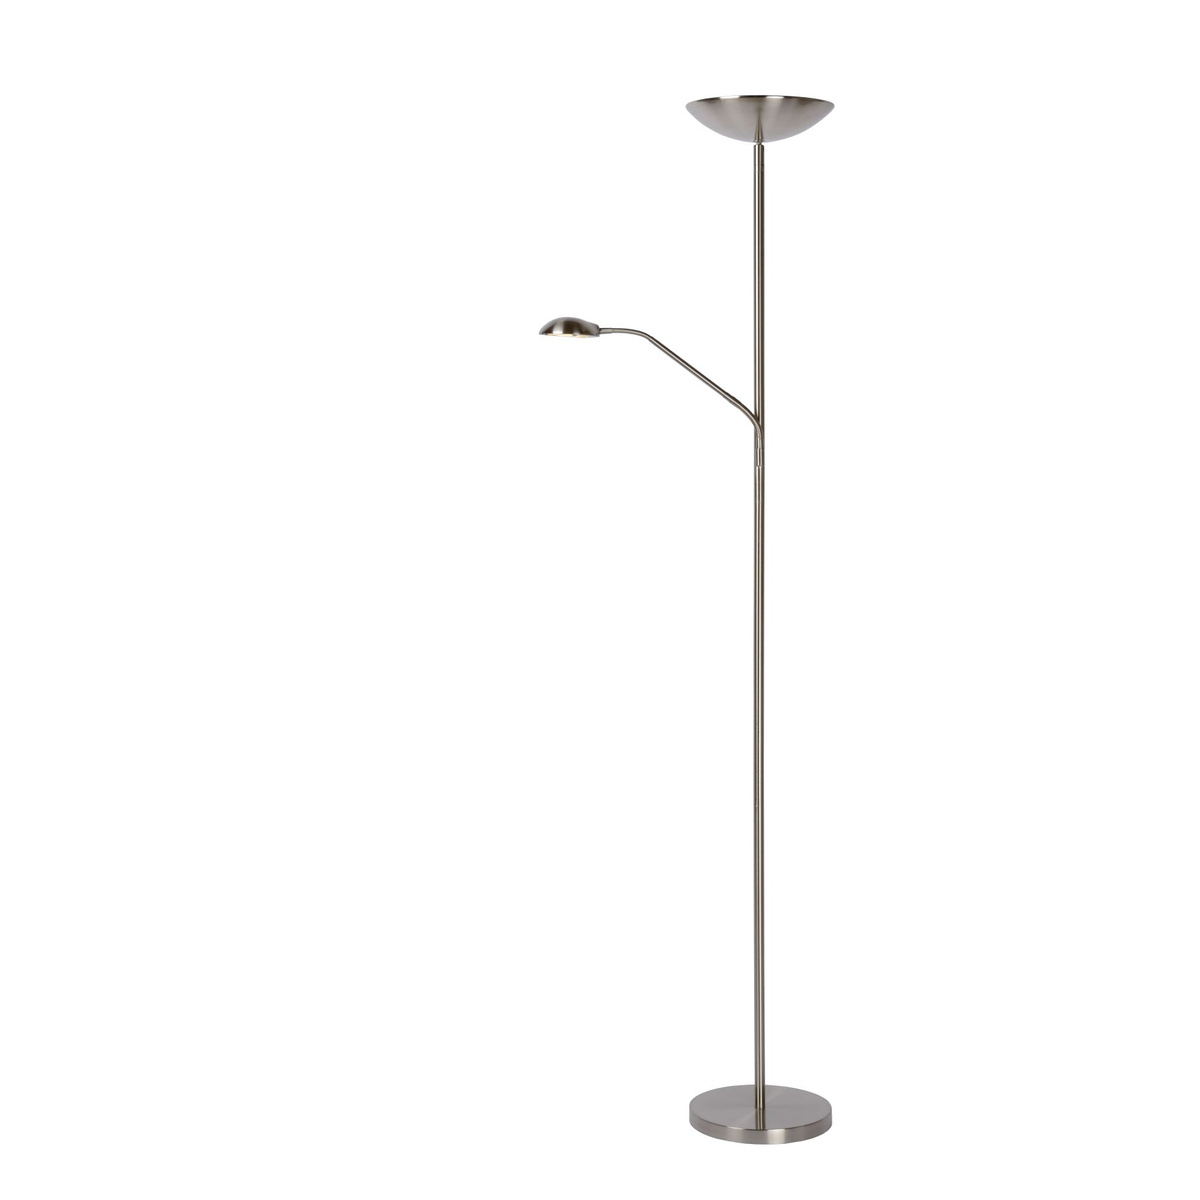 Full Size of Stehlampe Dimmbar Led Deckenfluter 20w Zenith 180 Cm Alu Mit Leselampe Wohnzimmer Stehlampen Schlafzimmer Wohnzimmer Stehlampe Dimmbar